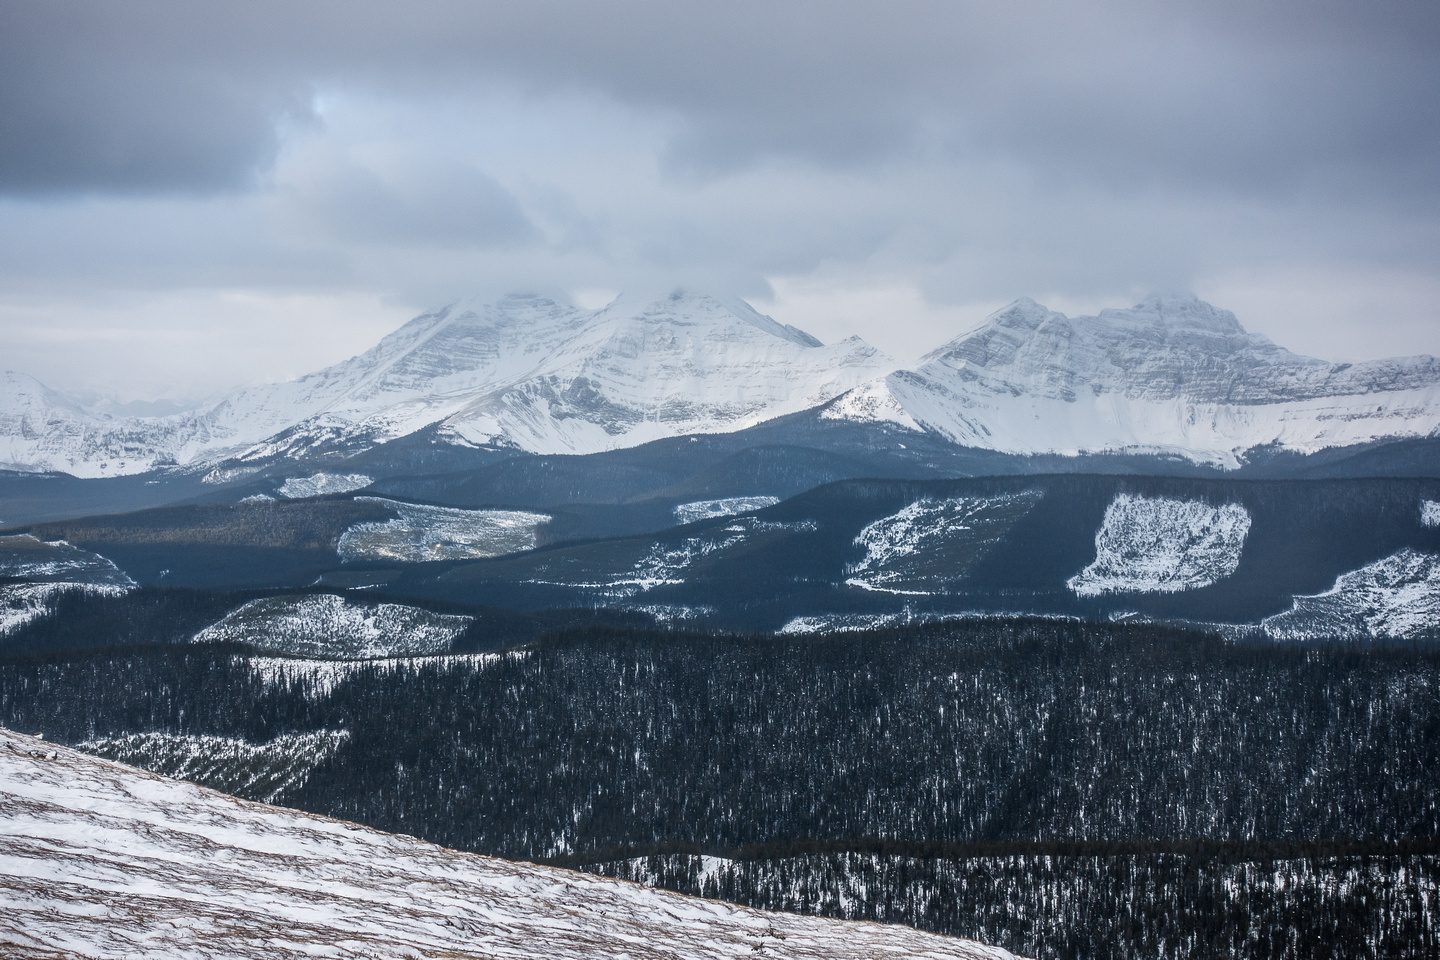 Mount Gass at left.